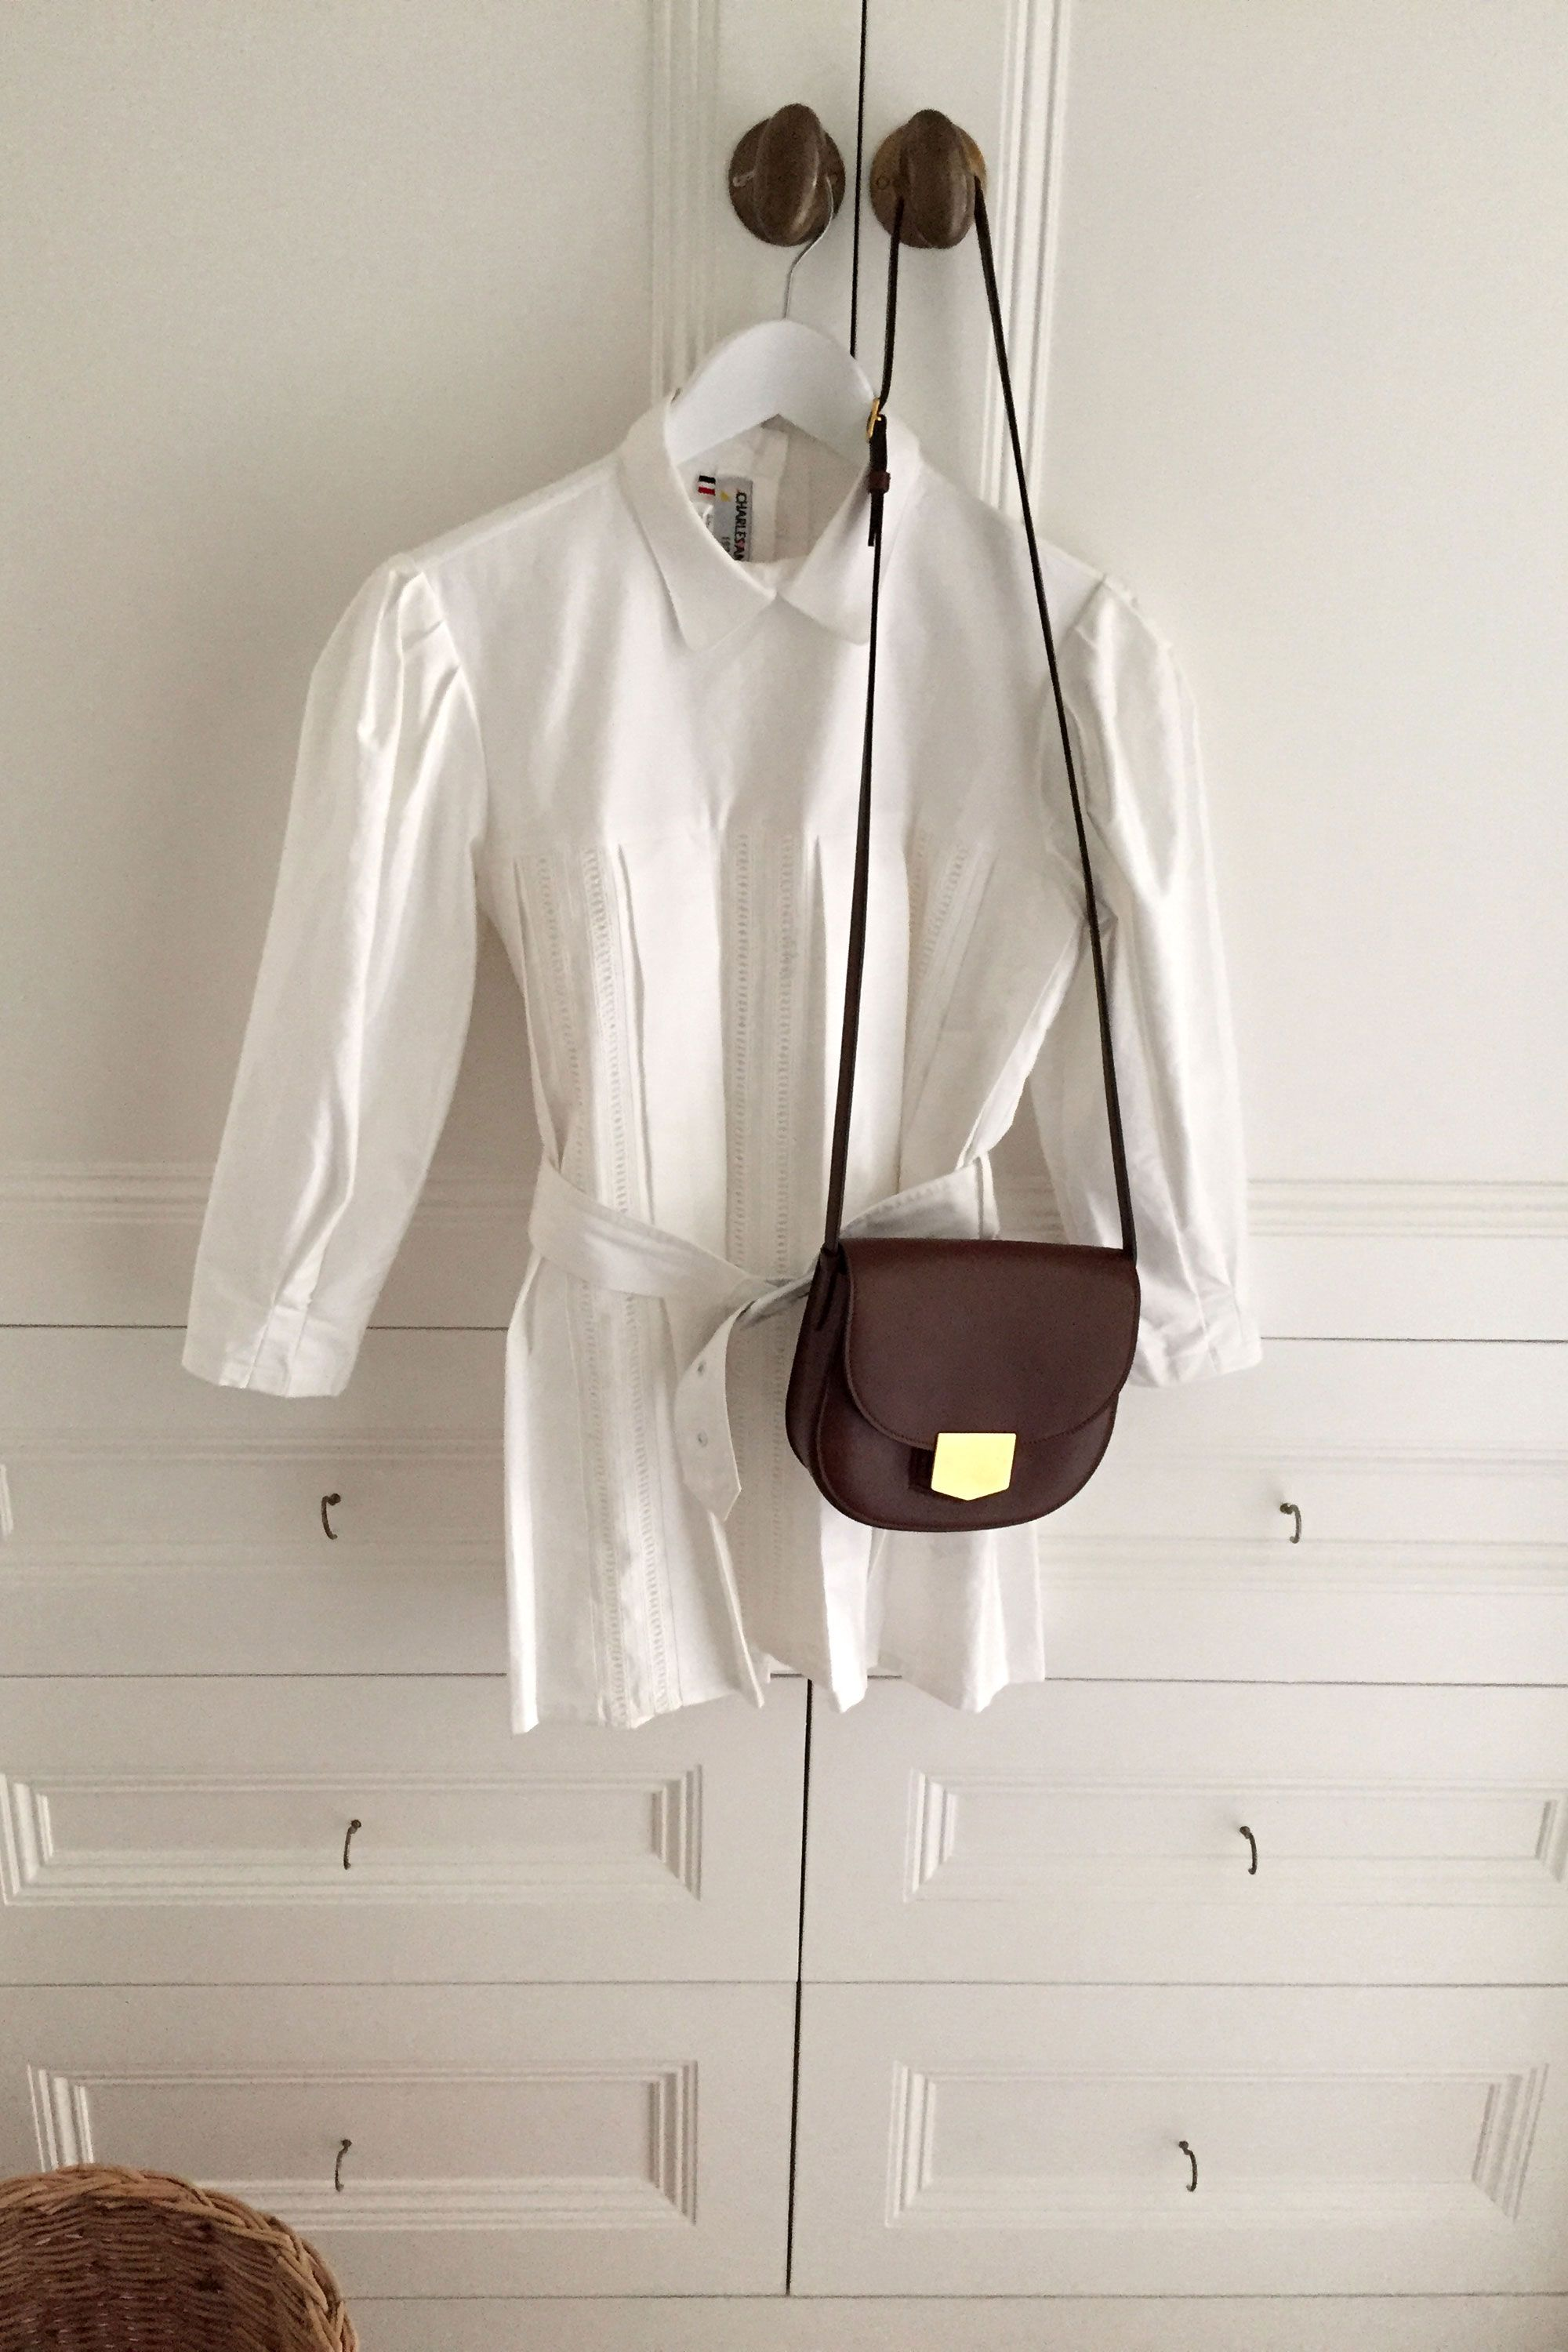 "<p>On Friday morning we set off towards the little village of Gympton in Oxfordshire where we are staying at a friend's cottage close to the festival grounds. For the journey I wear my favorite Charles Anastase blouse and Céline bag.</p><p><strong>Céline</strong> bag, $2,650, <a href=""https://www.celine.com/en/collections/fall-winter-runway-2015/leather-goods/medium-trotteur-bag-grained-calfskin/176633ZMB.07DS"" target=""_blank"">celine.com</a>, <strong>Charles Anastase</strong> blouse, <a href=""http://www.charles-anastase.com/"" target=""_blank"">charles-anastase.com</a>. <br></p>"